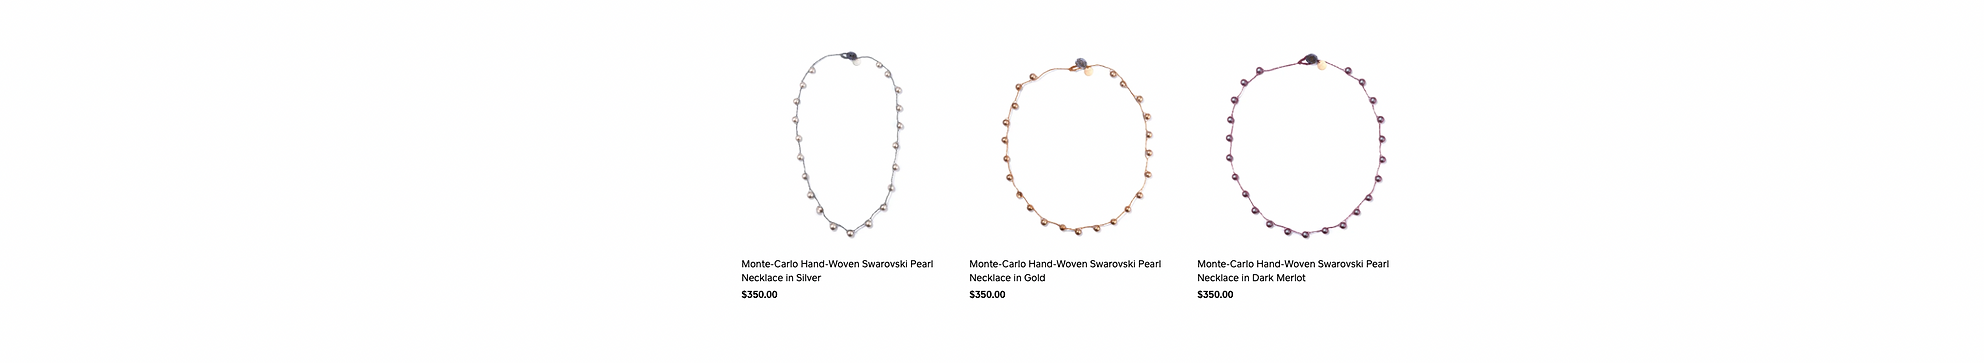 Shirley Ephraim Fine Earth Jewelry Necklaces 2.png